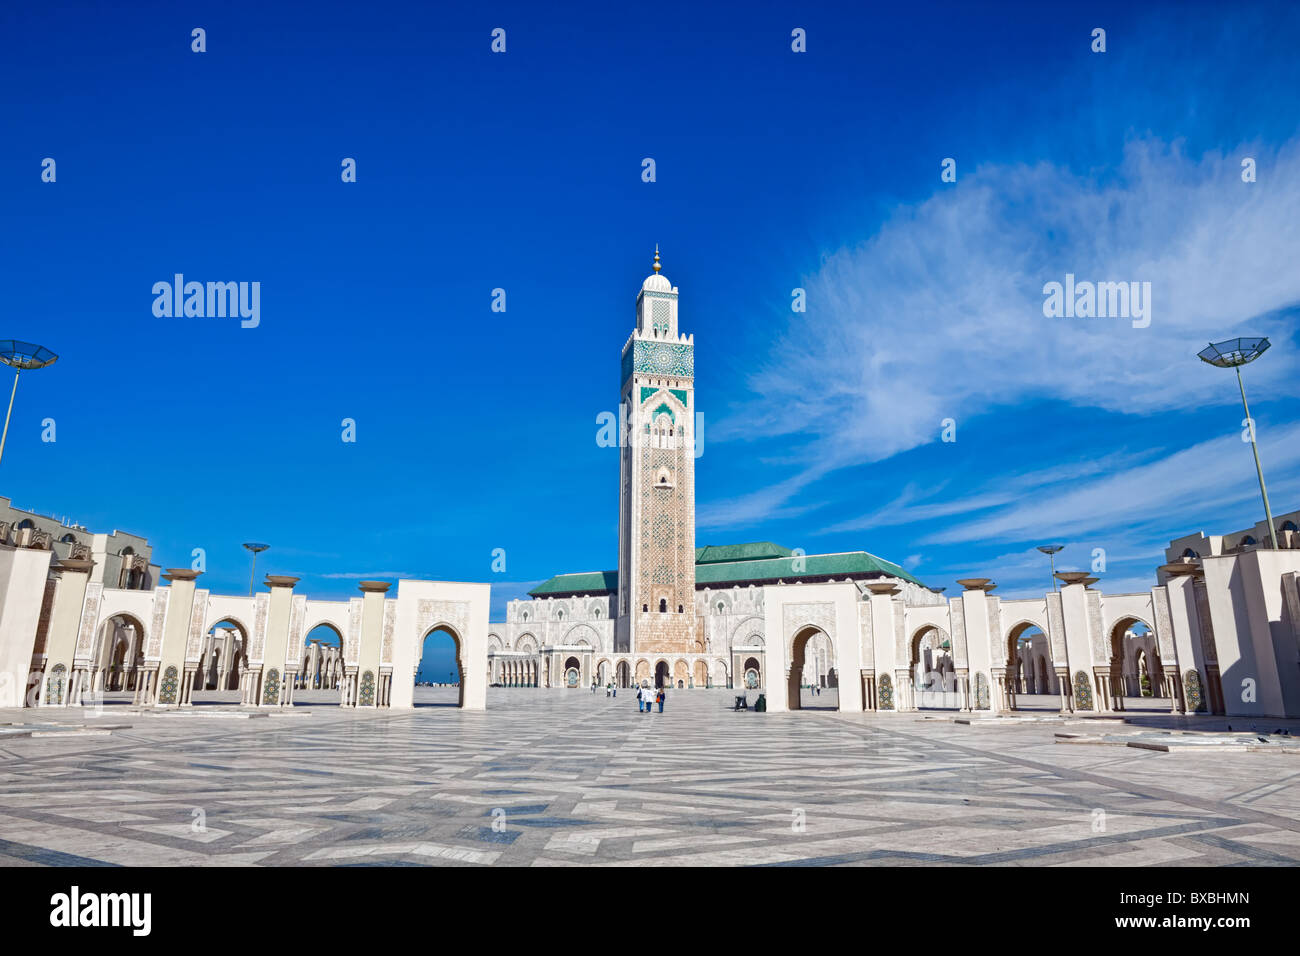 Exterior of Hassan II mosque with blue sky and cloudscape background, Casablanca, Morocco. - Stock Image